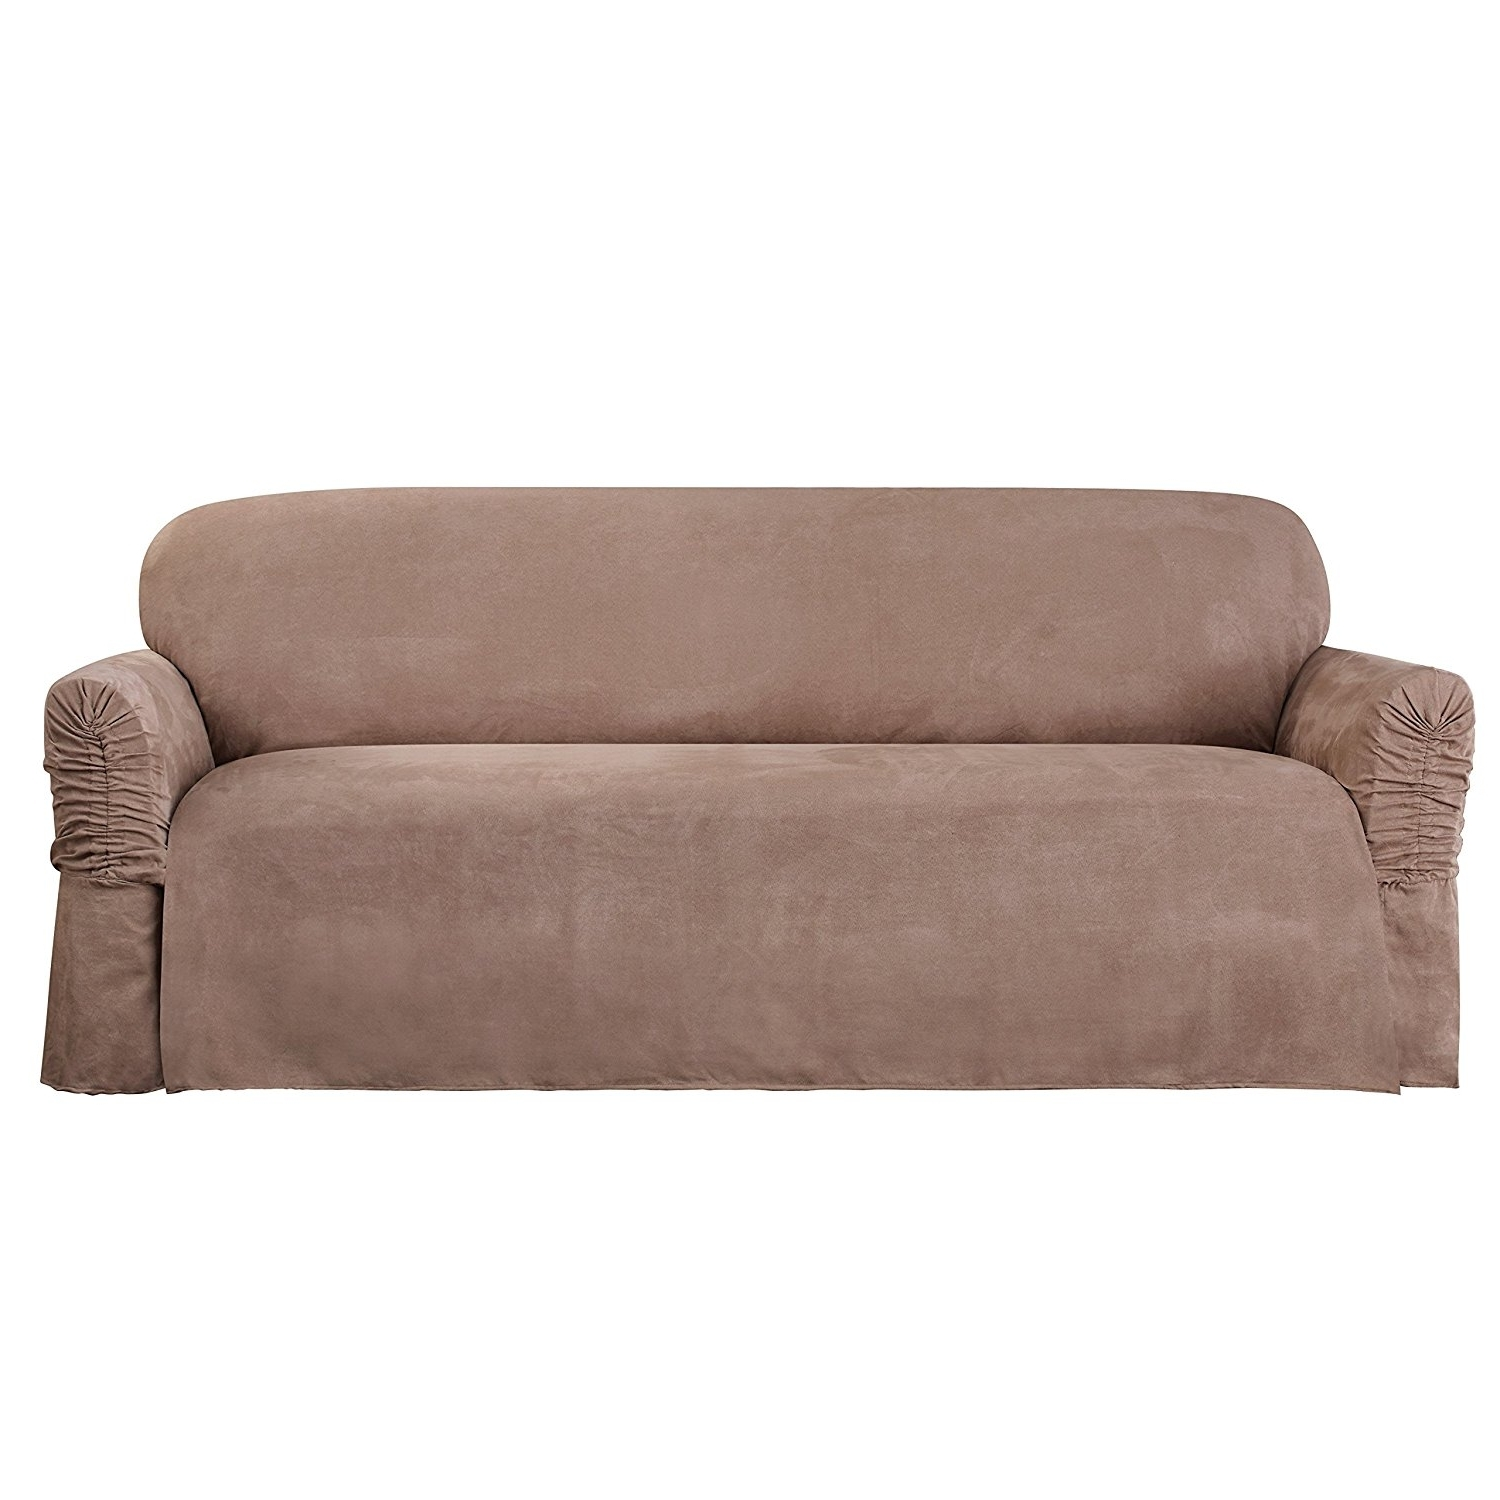 Well Known Faux Suede Sofas With Amazon: Sure Fit Faux Suede – Sofa Slipcover – Taupe (Sf (View 6 of 15)